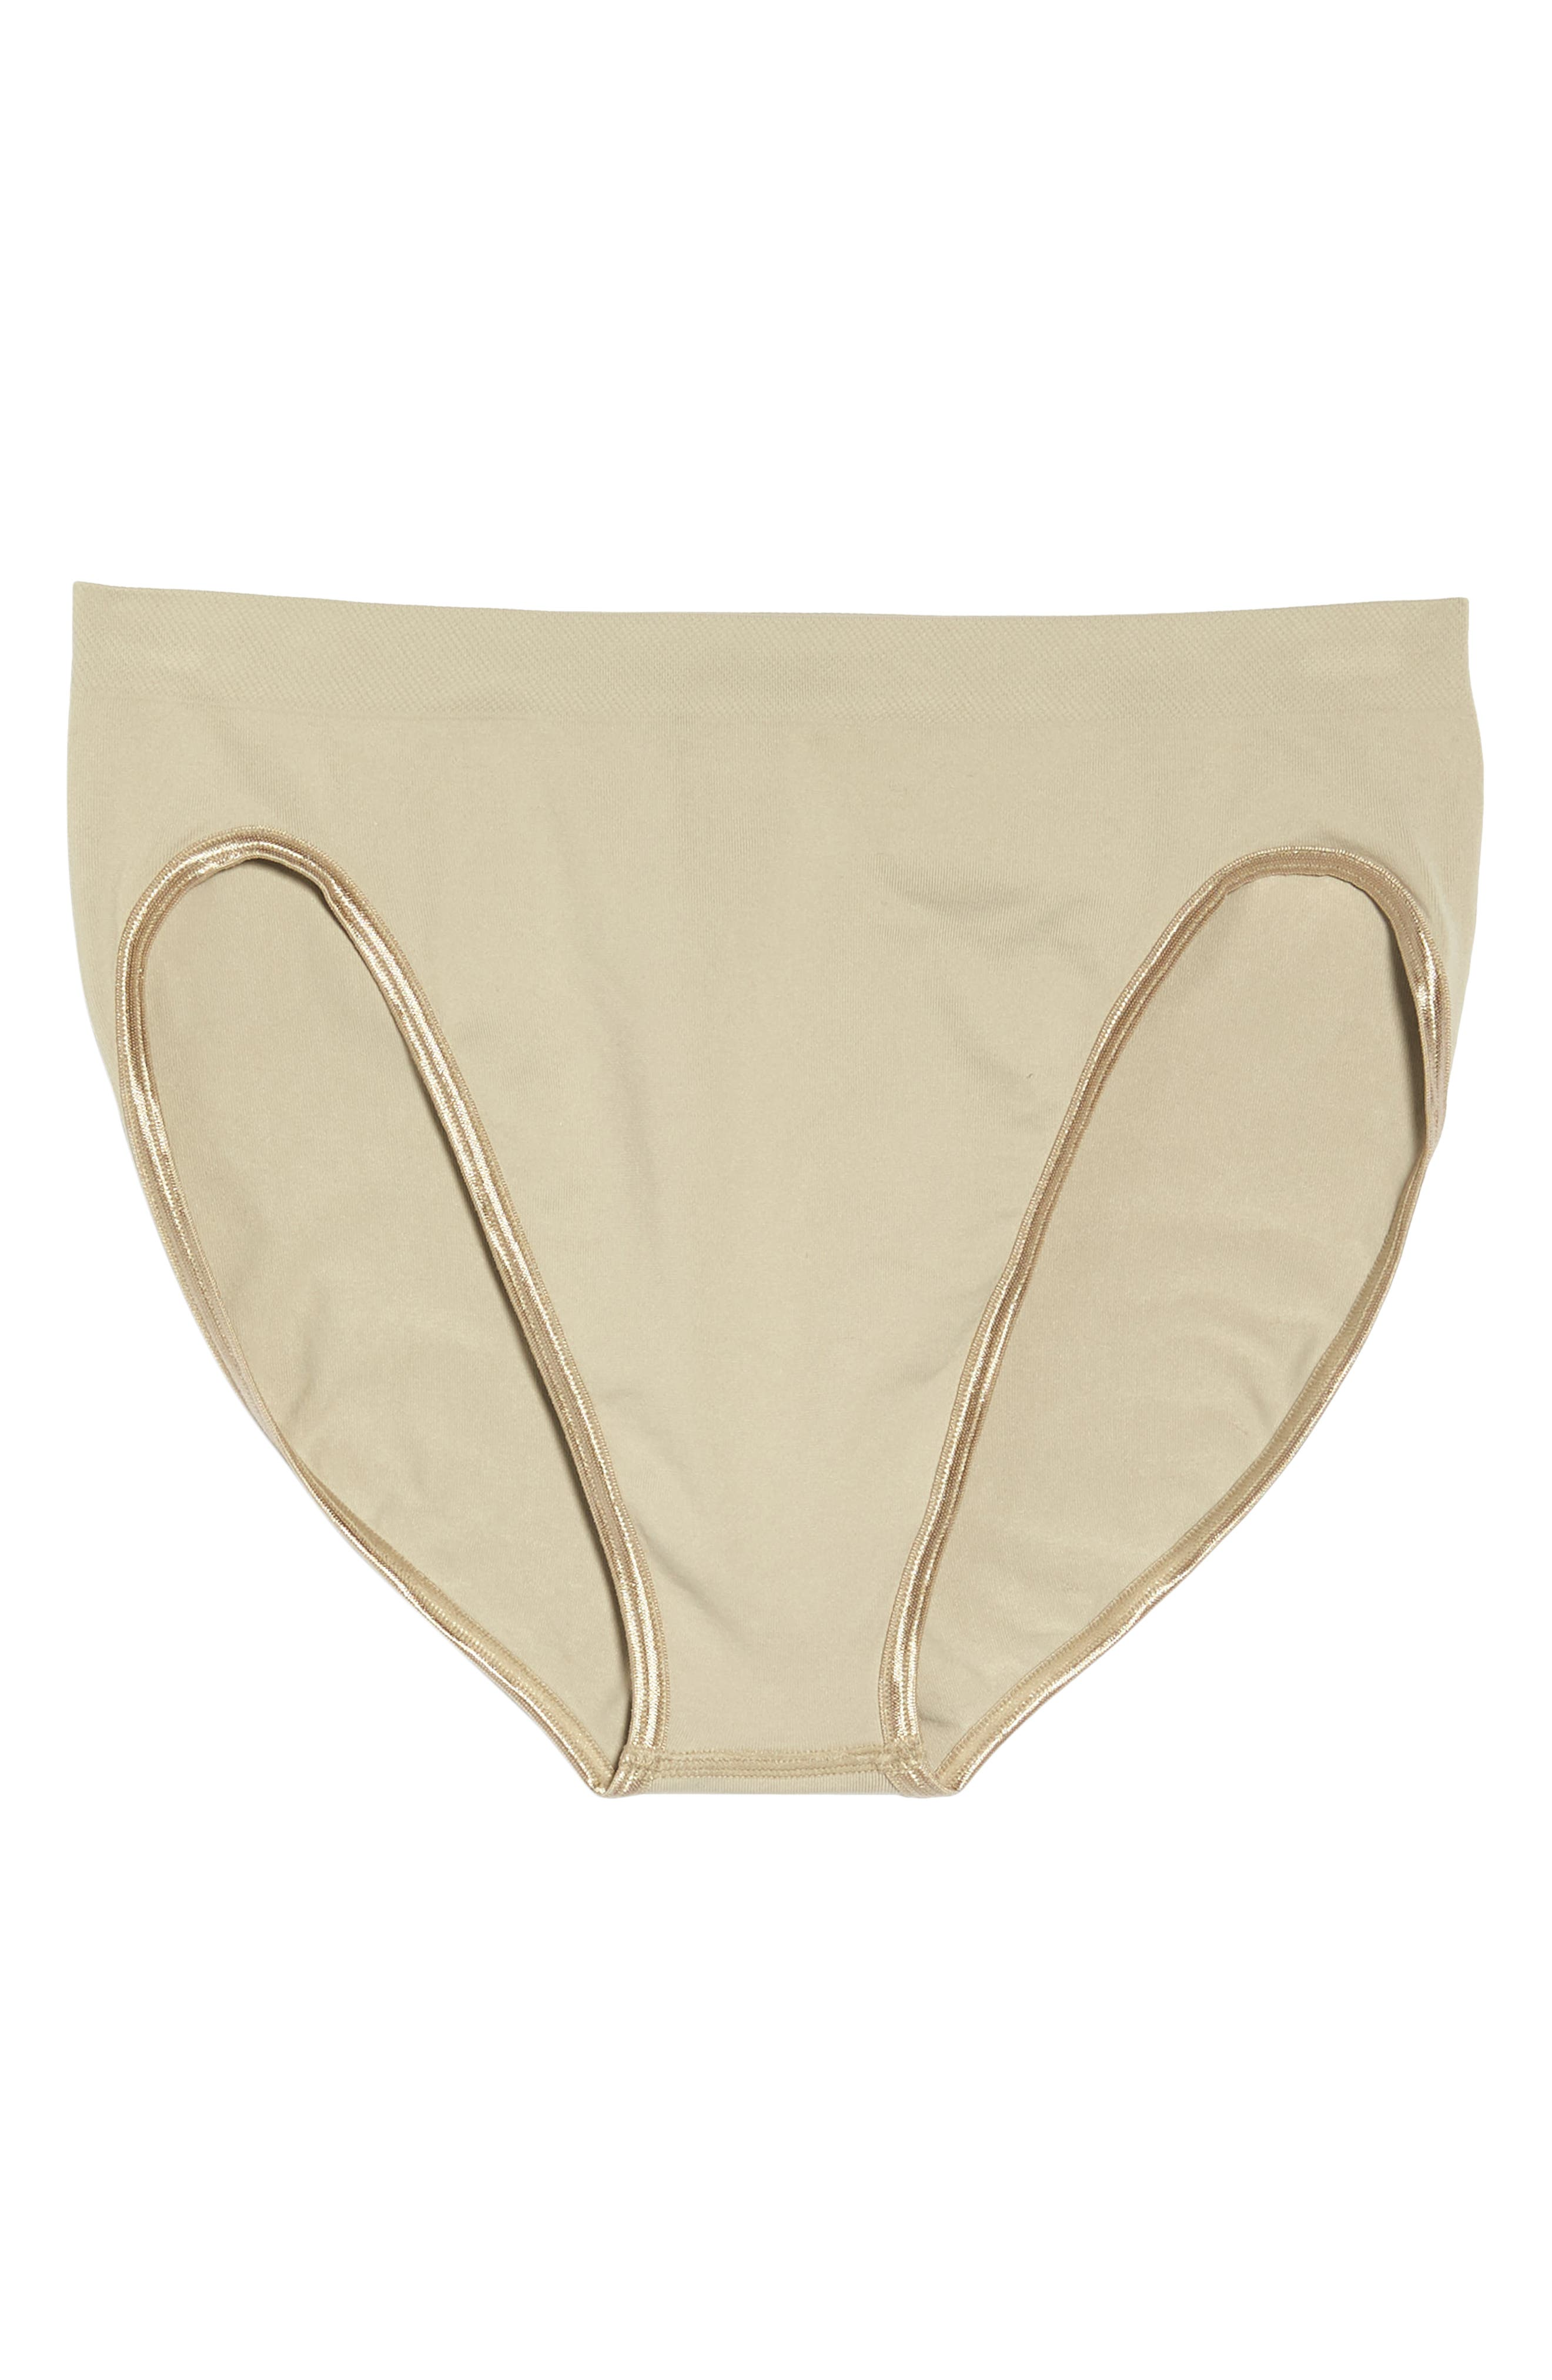 'Touch Feeling' High Cut Briefs,                             Alternate thumbnail 6, color,                             NATURAL STONE